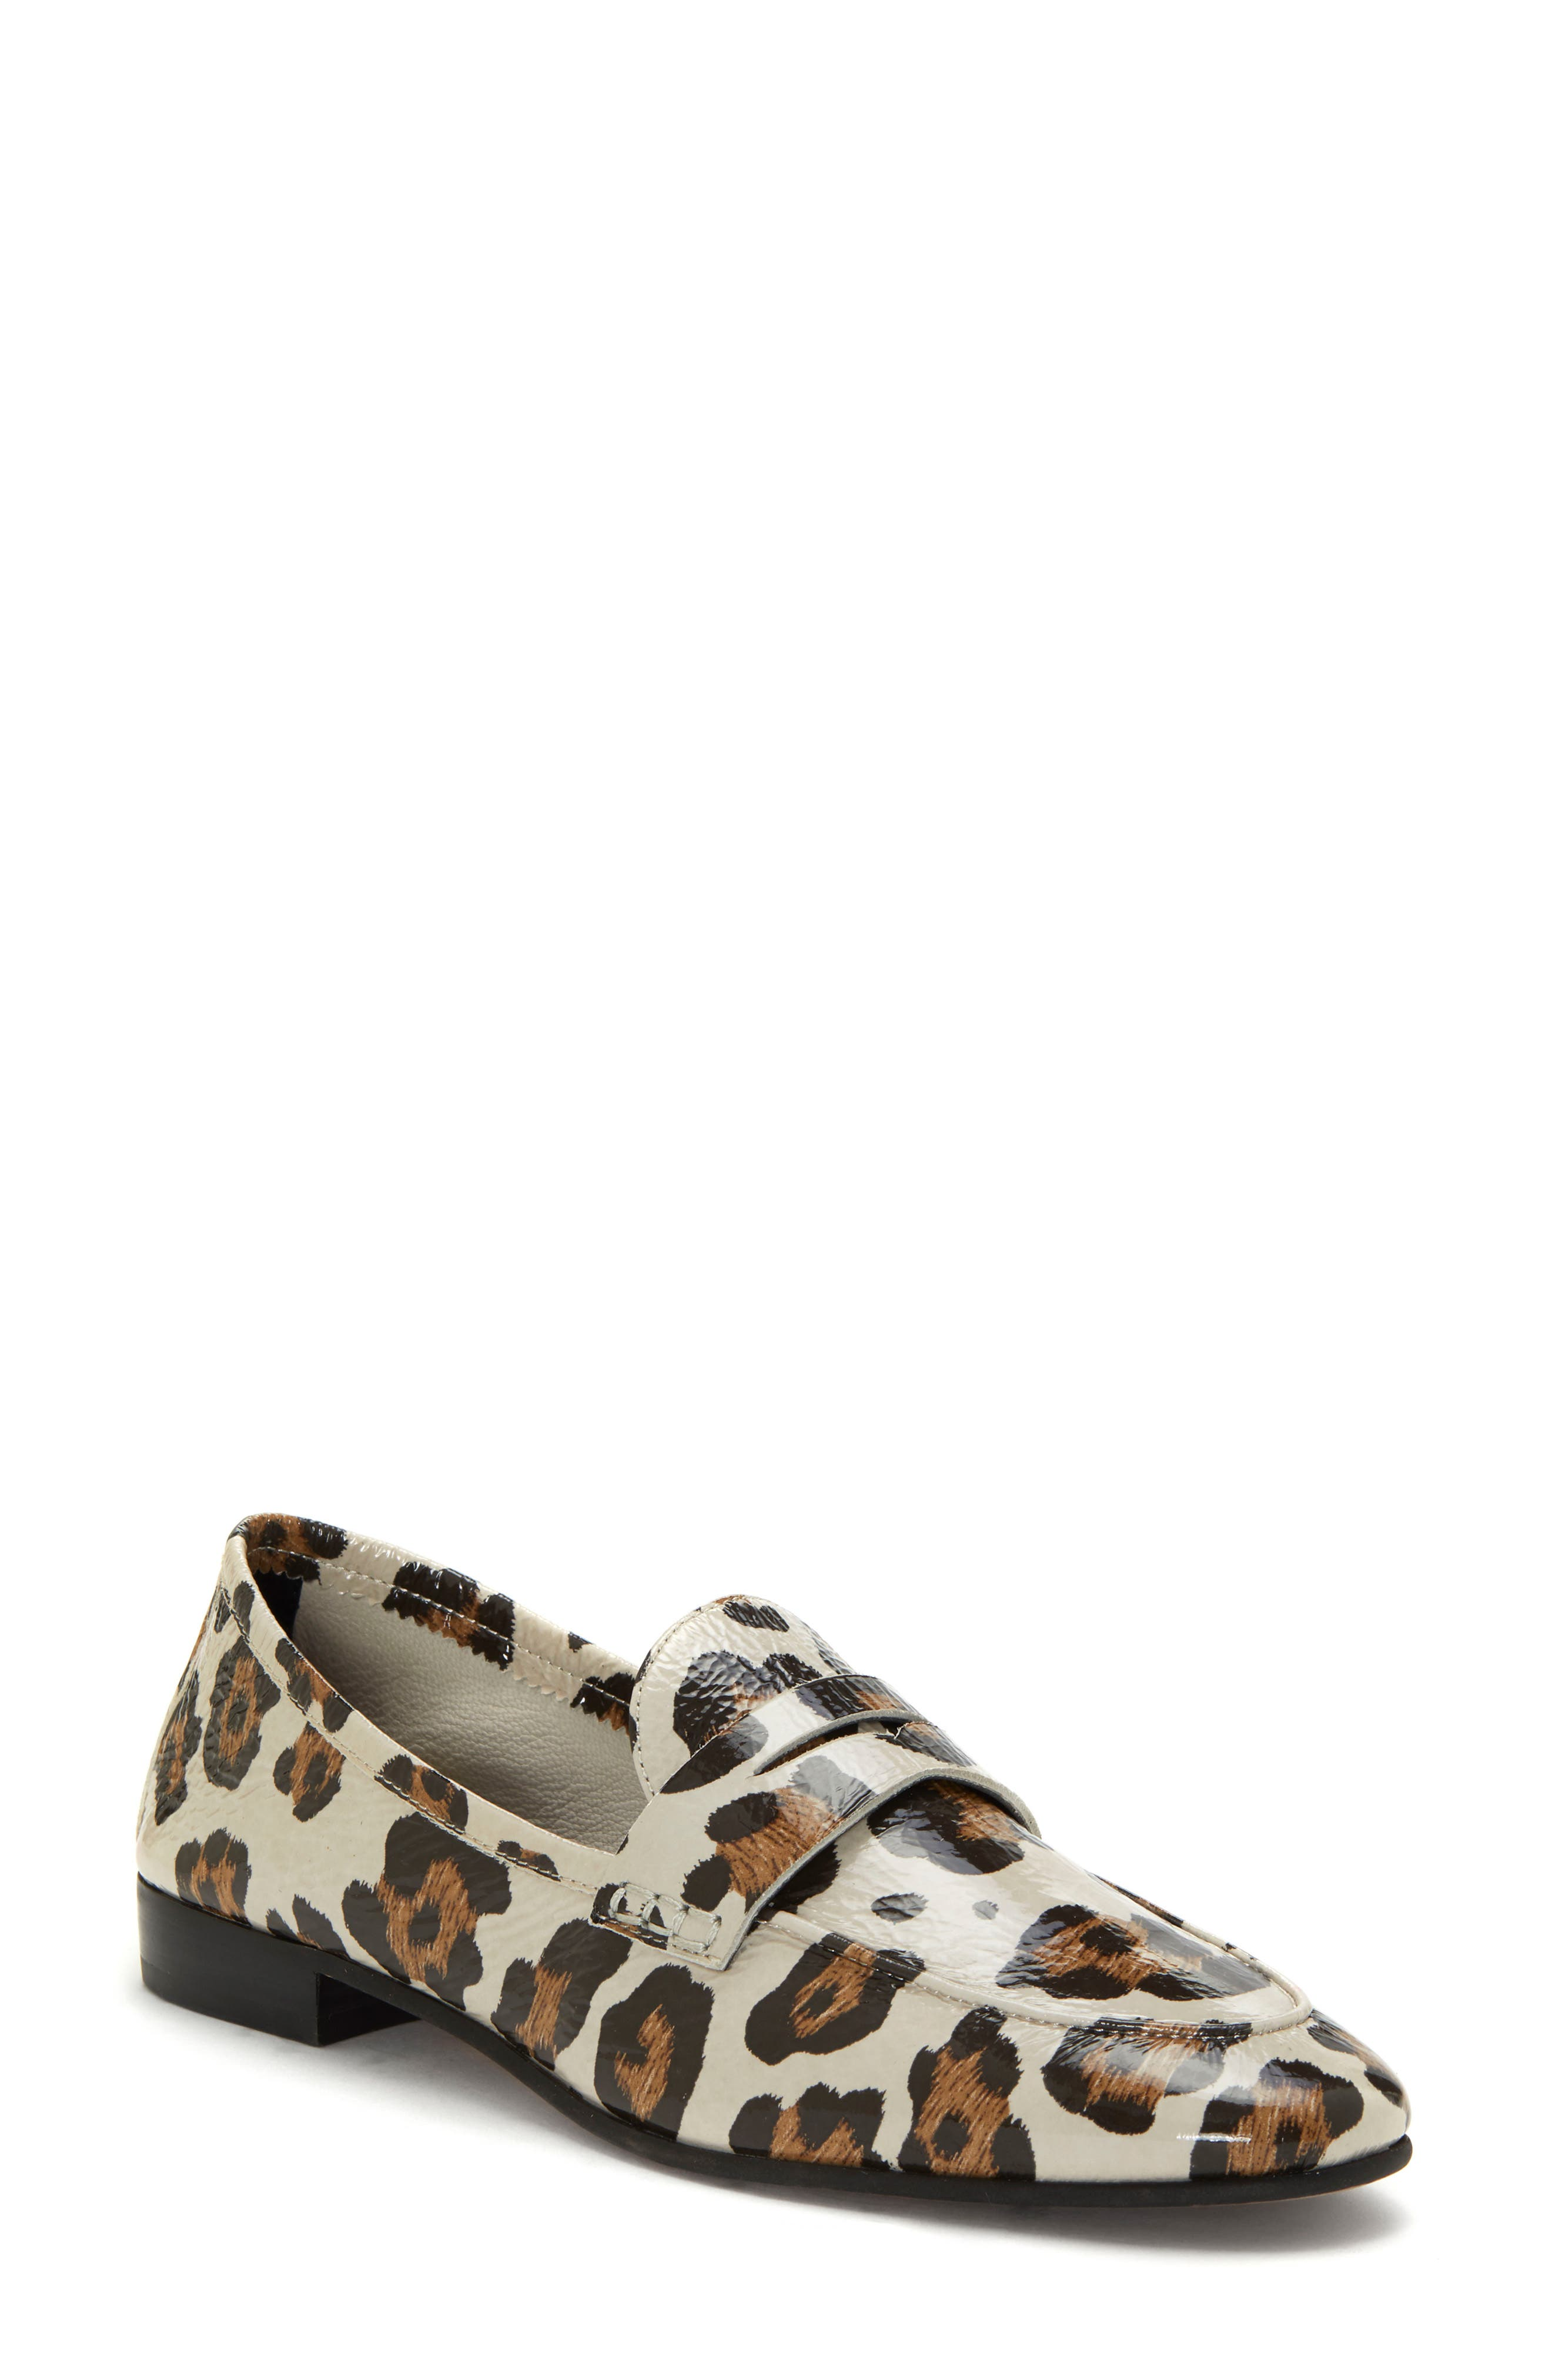 Women'S Macinda Metallic Leather Loafers in Natural Leopard Haircalf